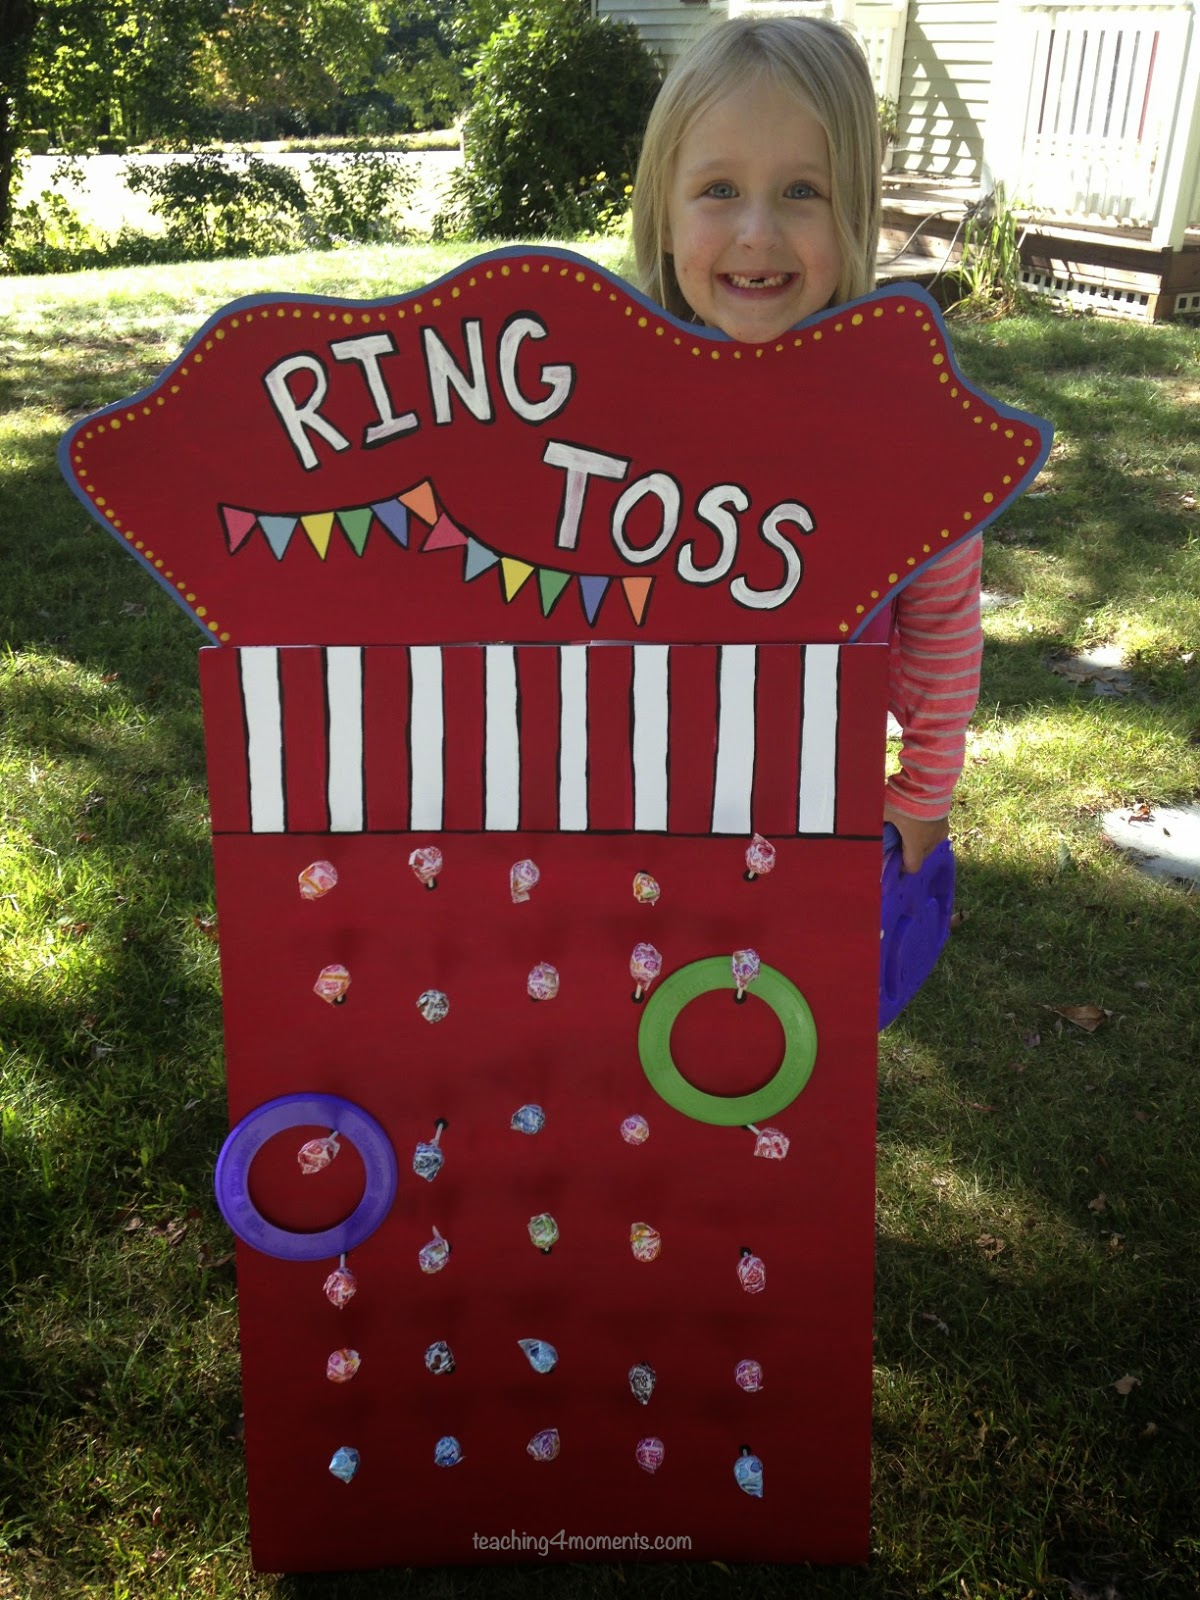 teaching4moments, easy to ring toss game